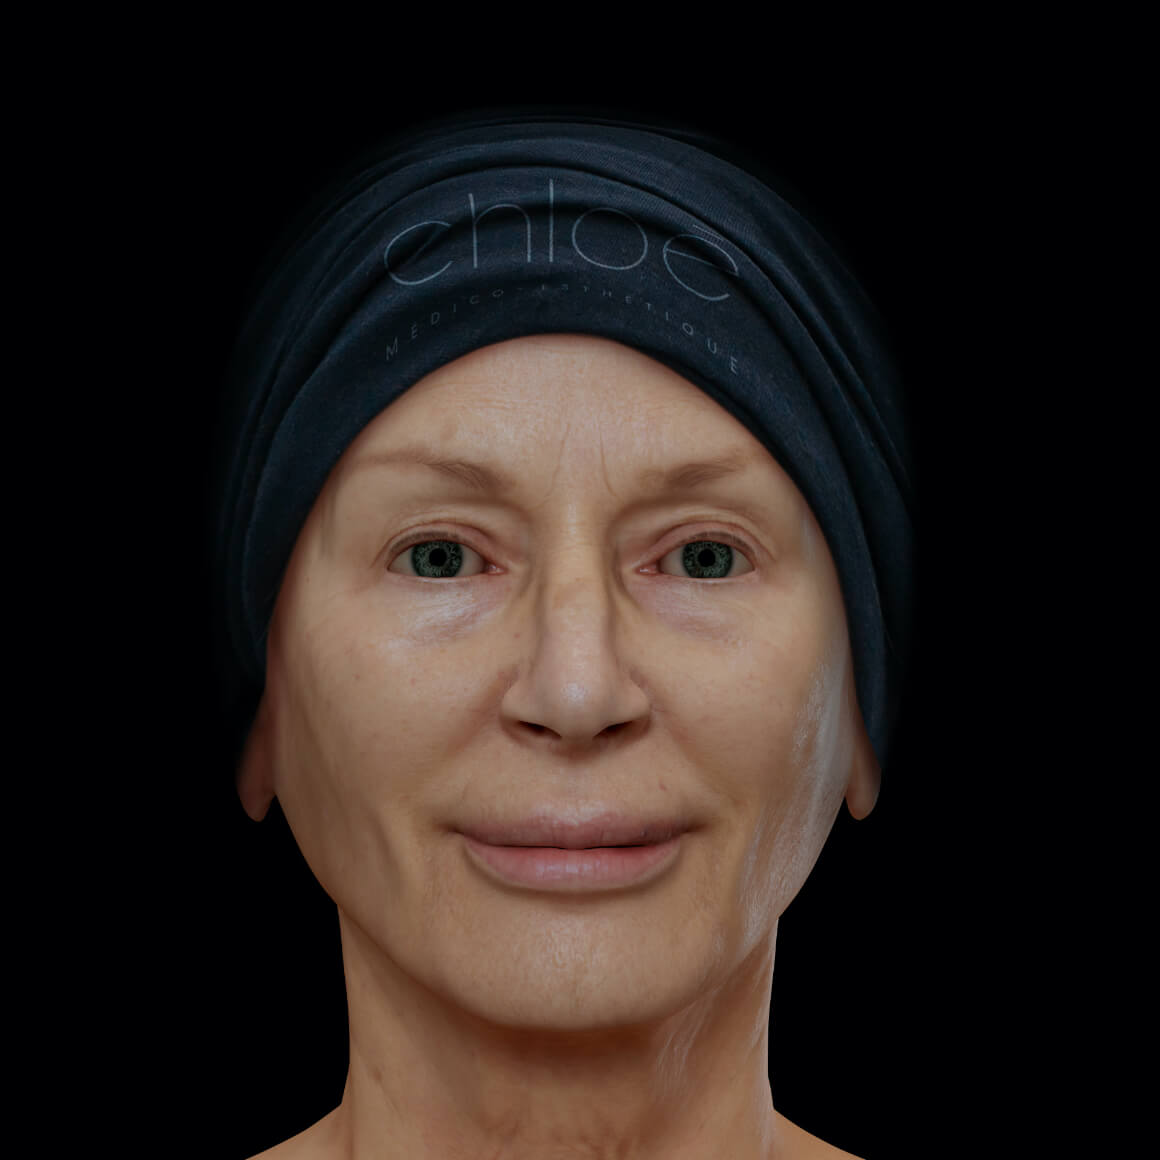 Female patient from Clinique Chloé positioned facing front after a Profound non-surgical facelift treatment